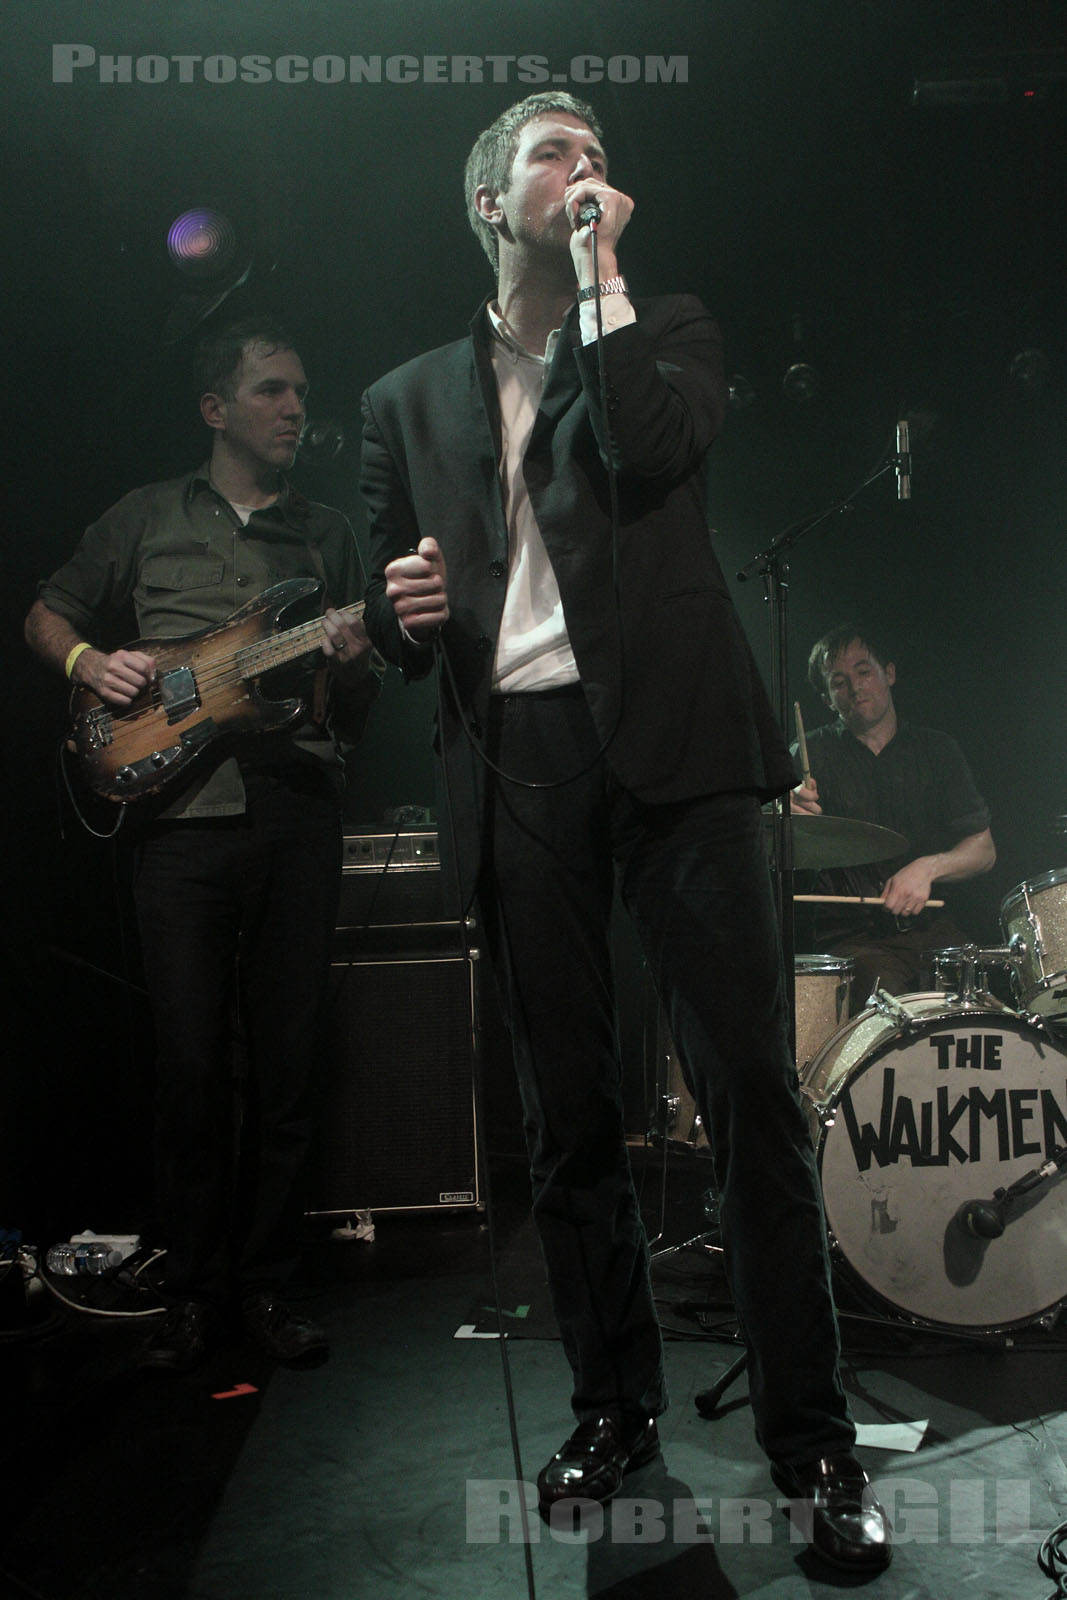 THE WALKMEN - 2010-11-19 - PARIS - La Fleche d'Or